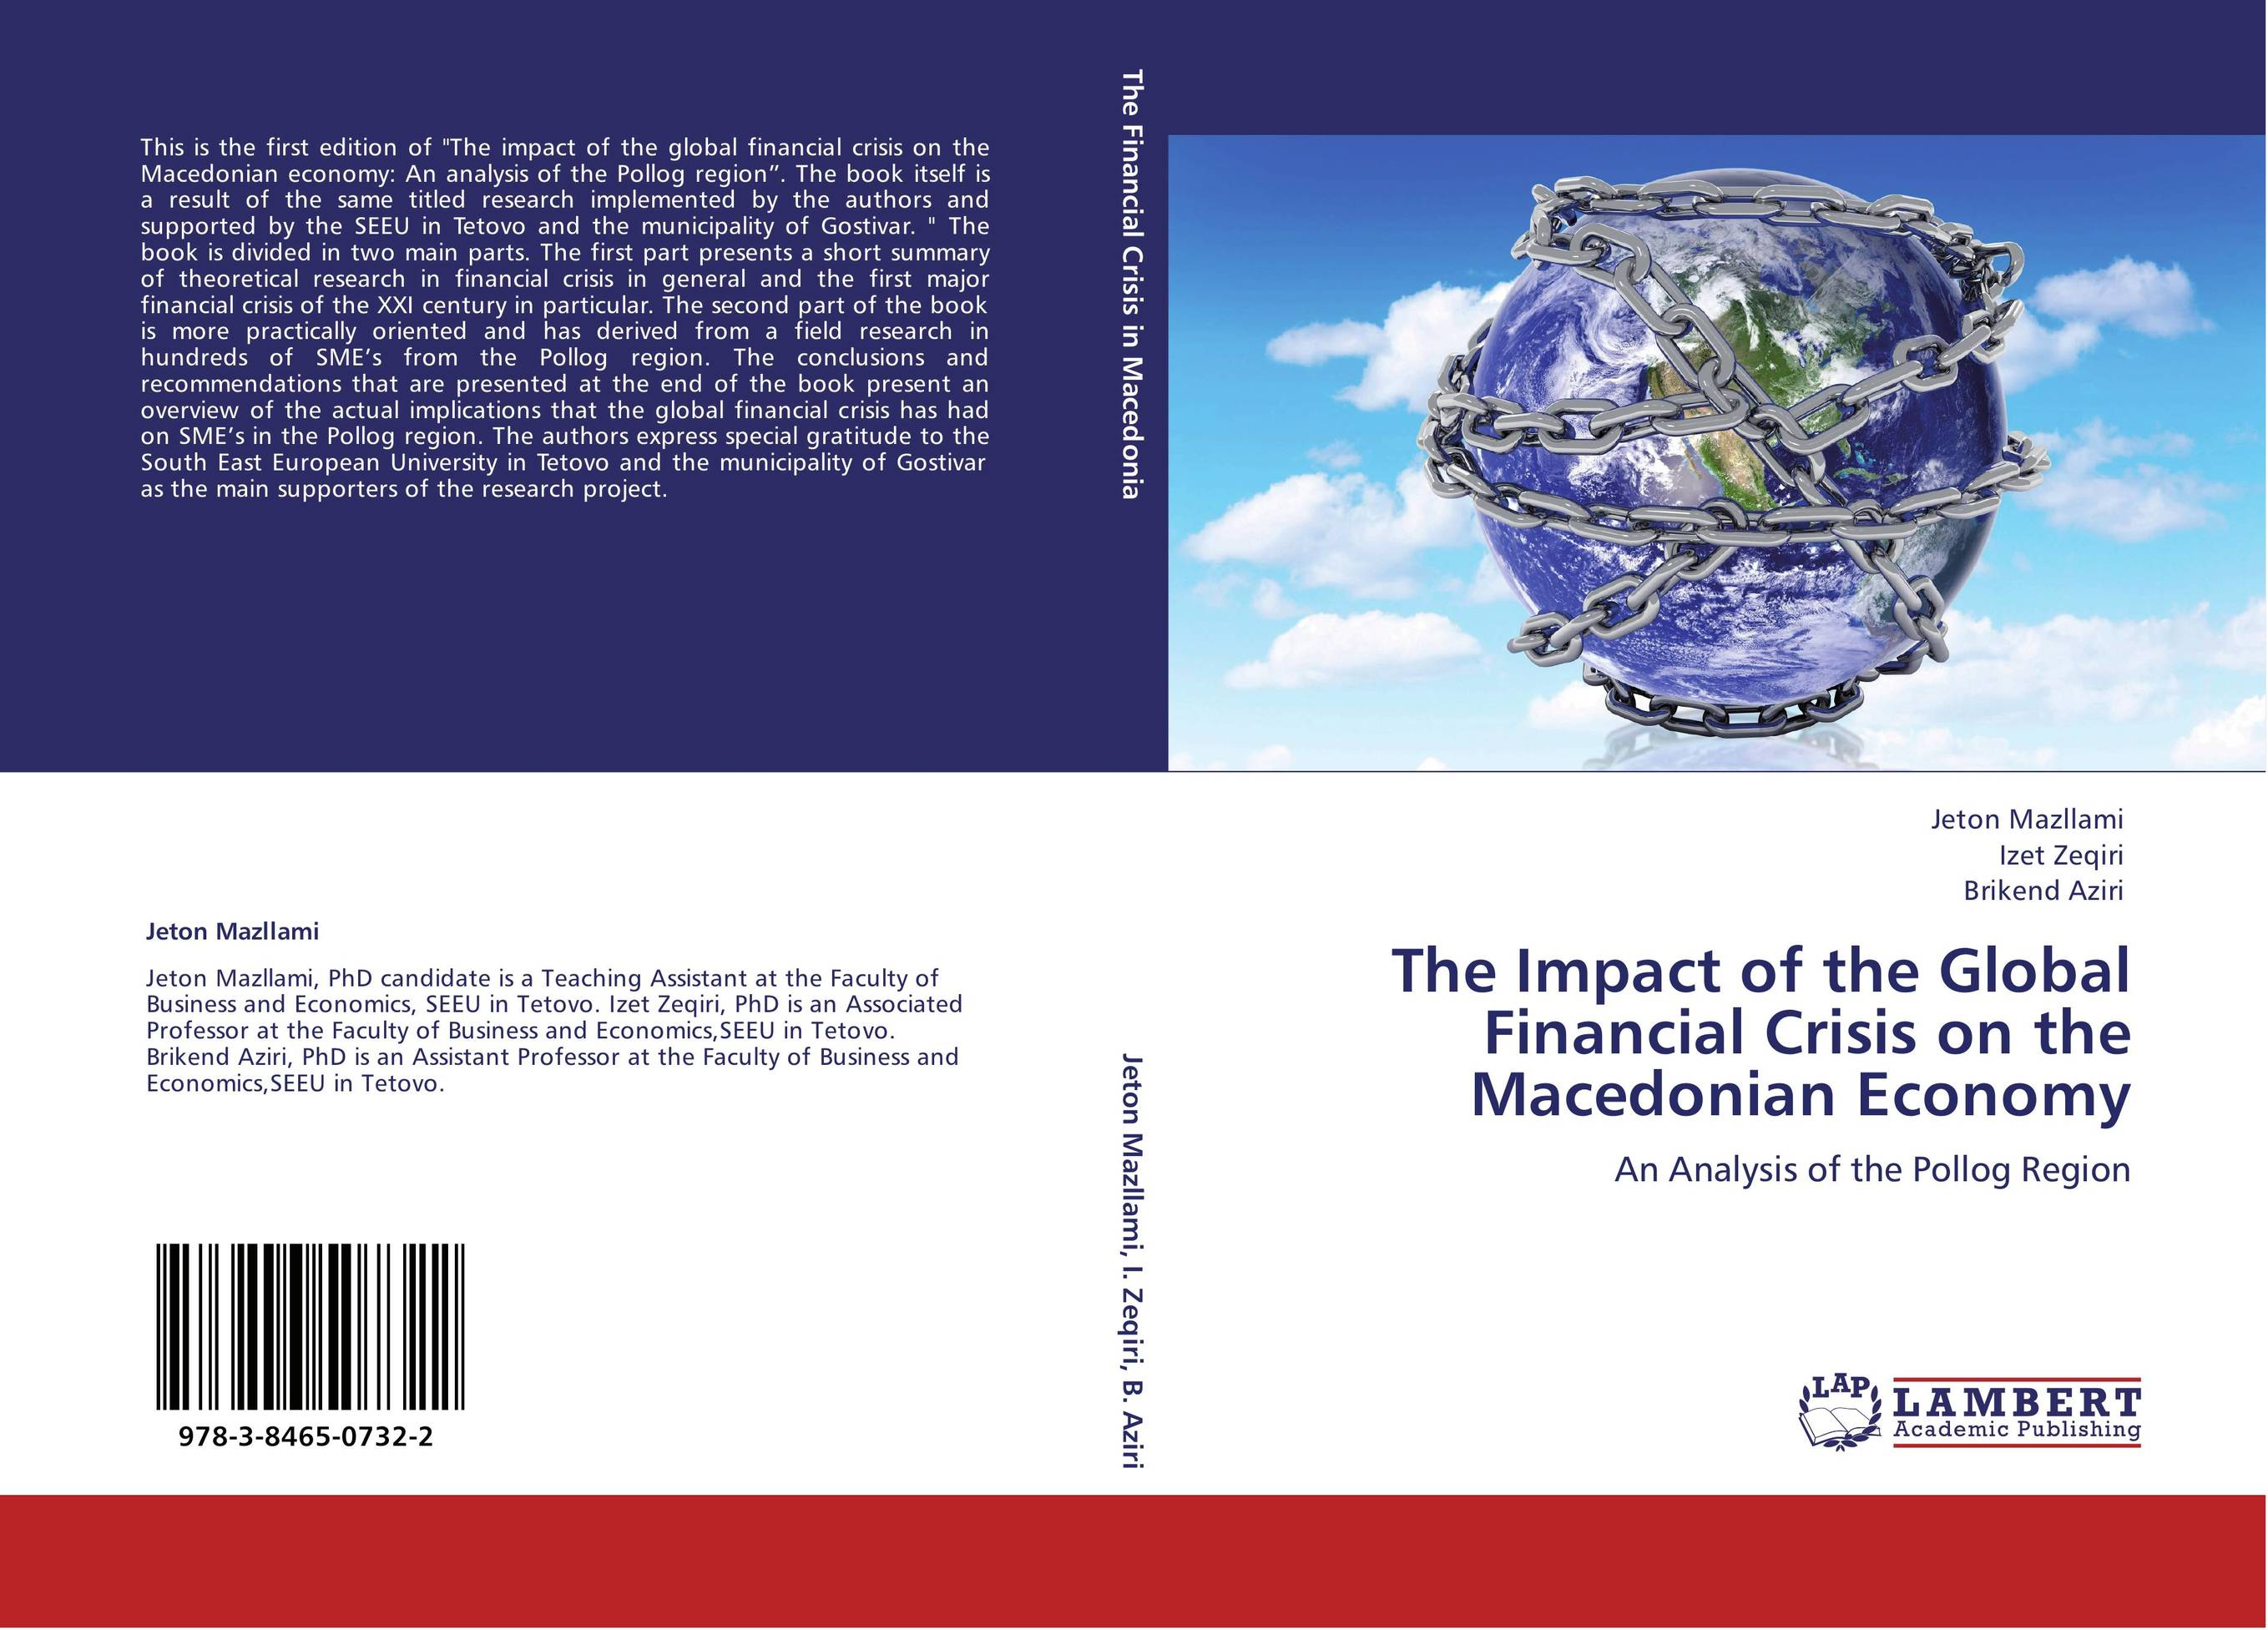 impact of the global financial crisis on france economics essay 2008-2009 financial crisis pre crisis the 2008-2009 financial crisis the 2008-2009 financial crisis was the biggest postwar era downturn these are the main macroeconomic implications.